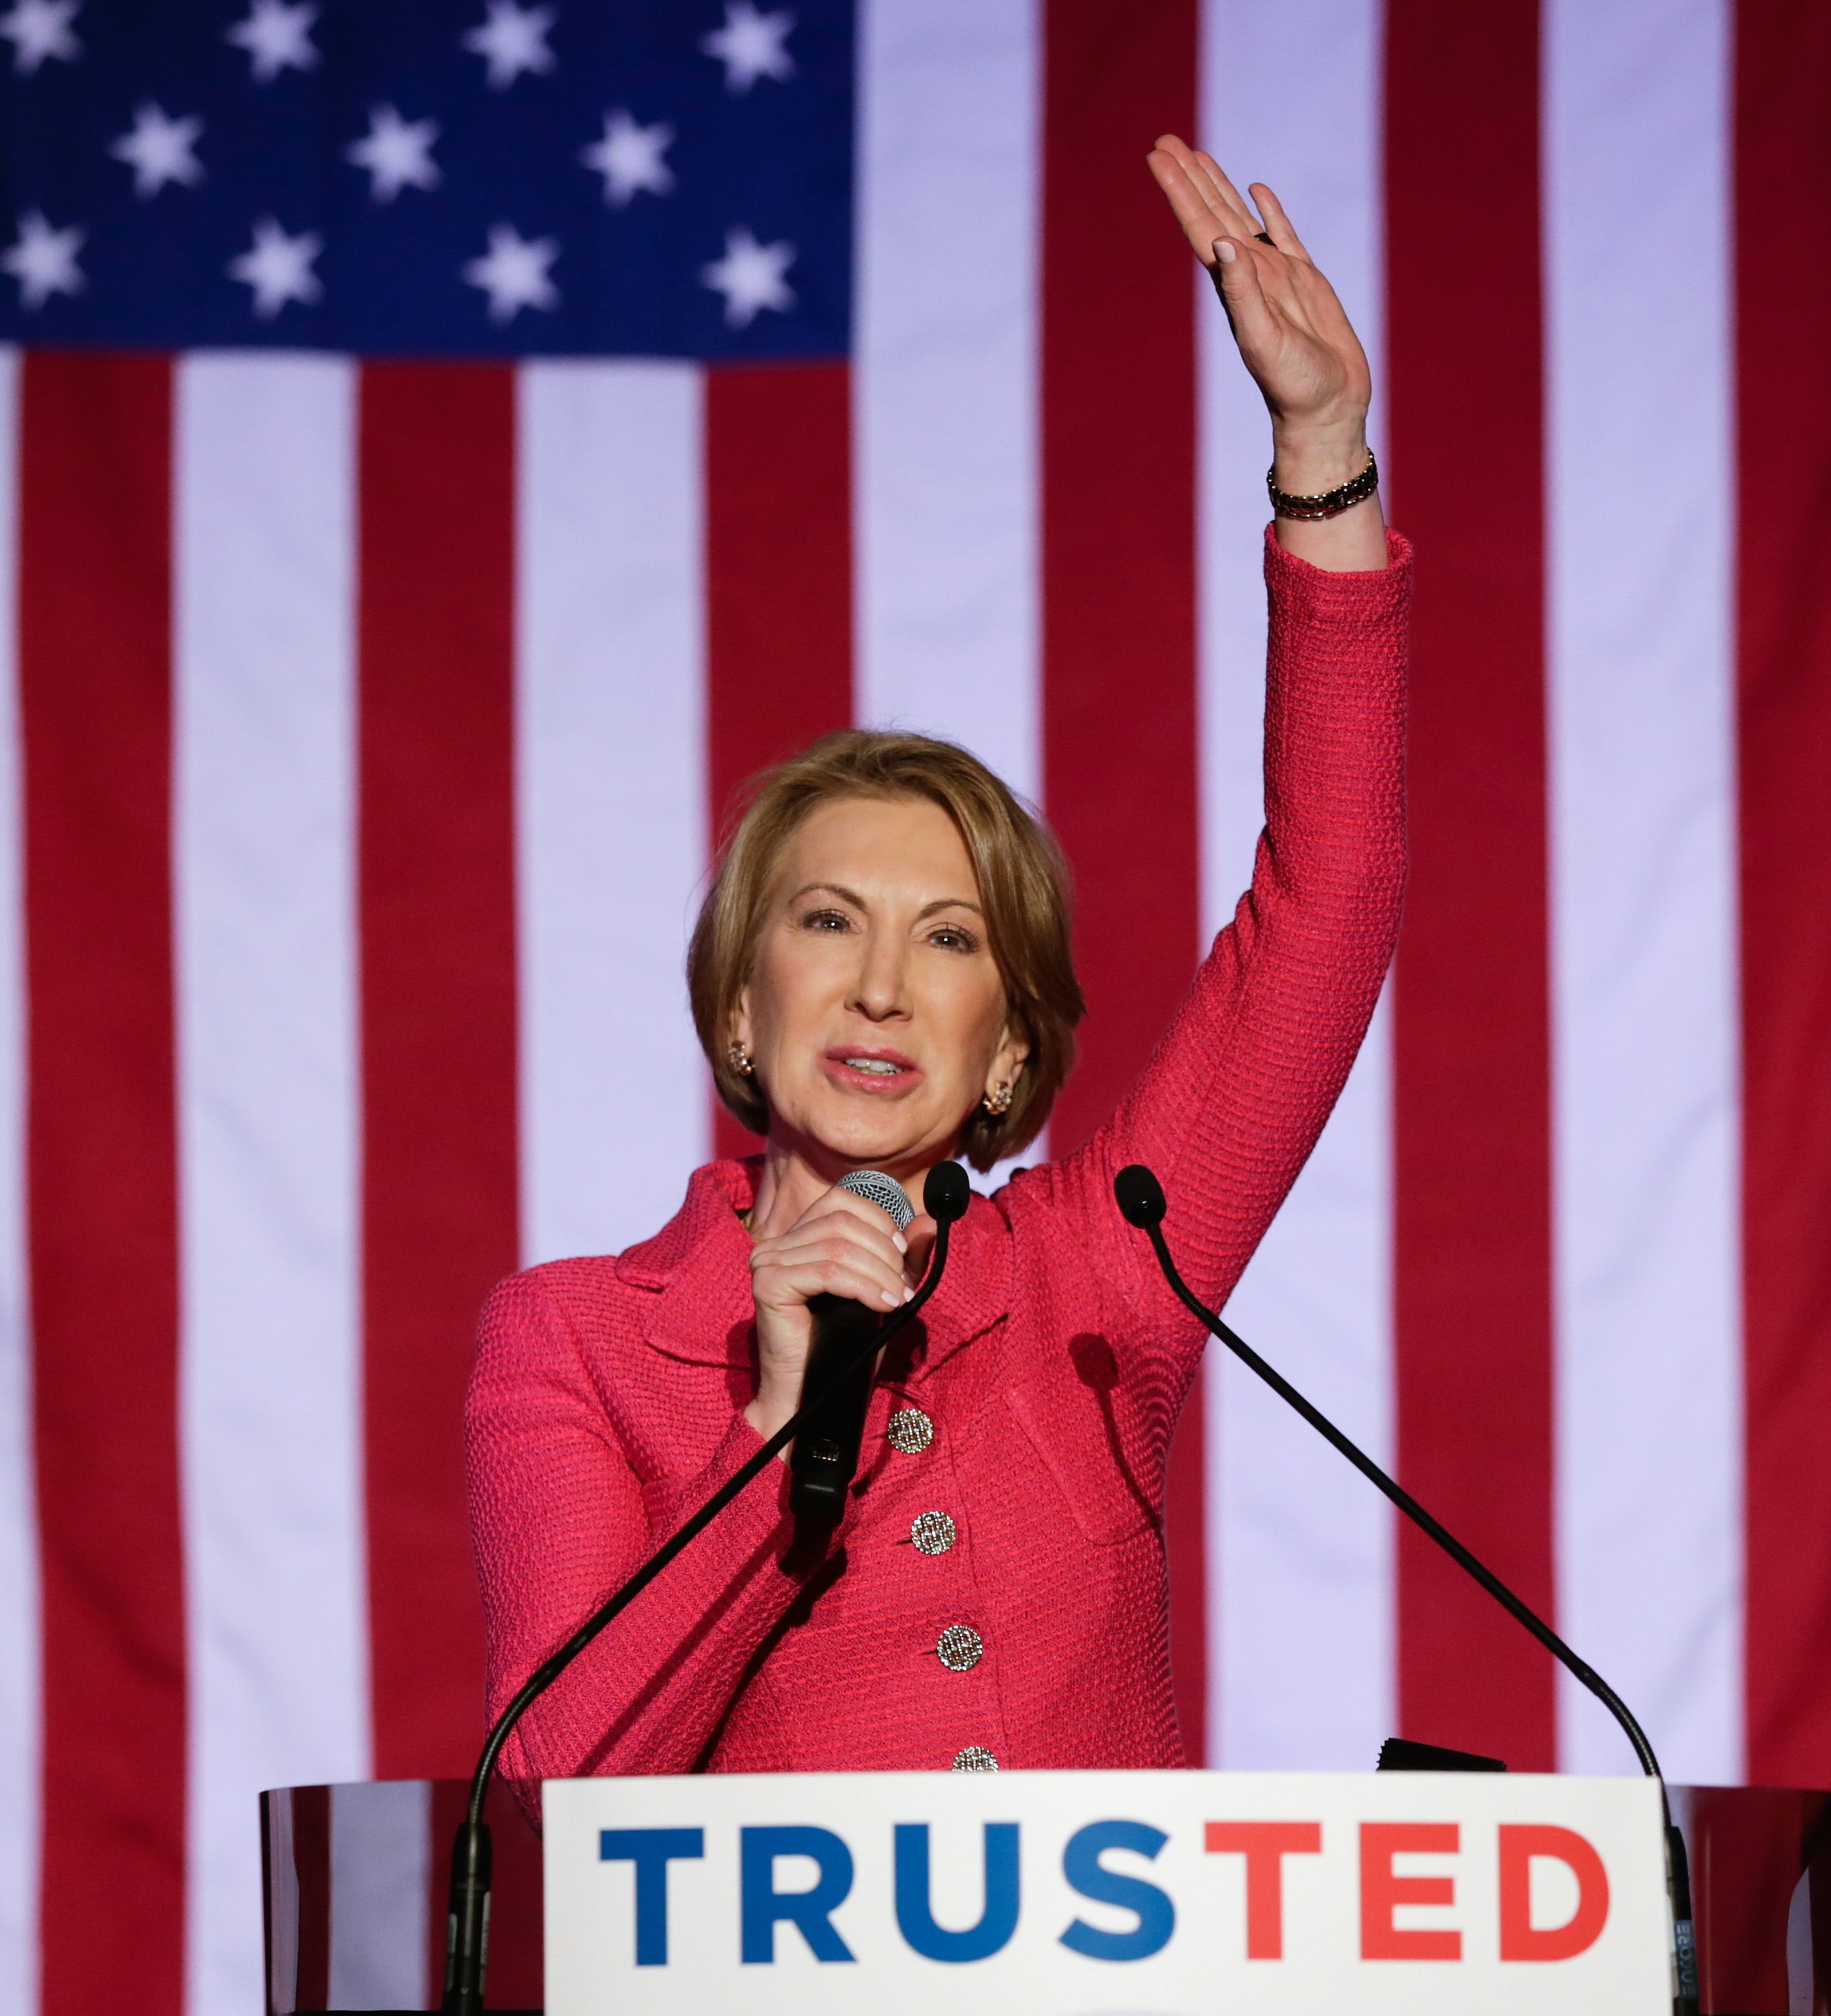 Stephen Colbert Lampoons Ted Cruz's Selection of 'Wicked Stepmother' Carly Fiorina